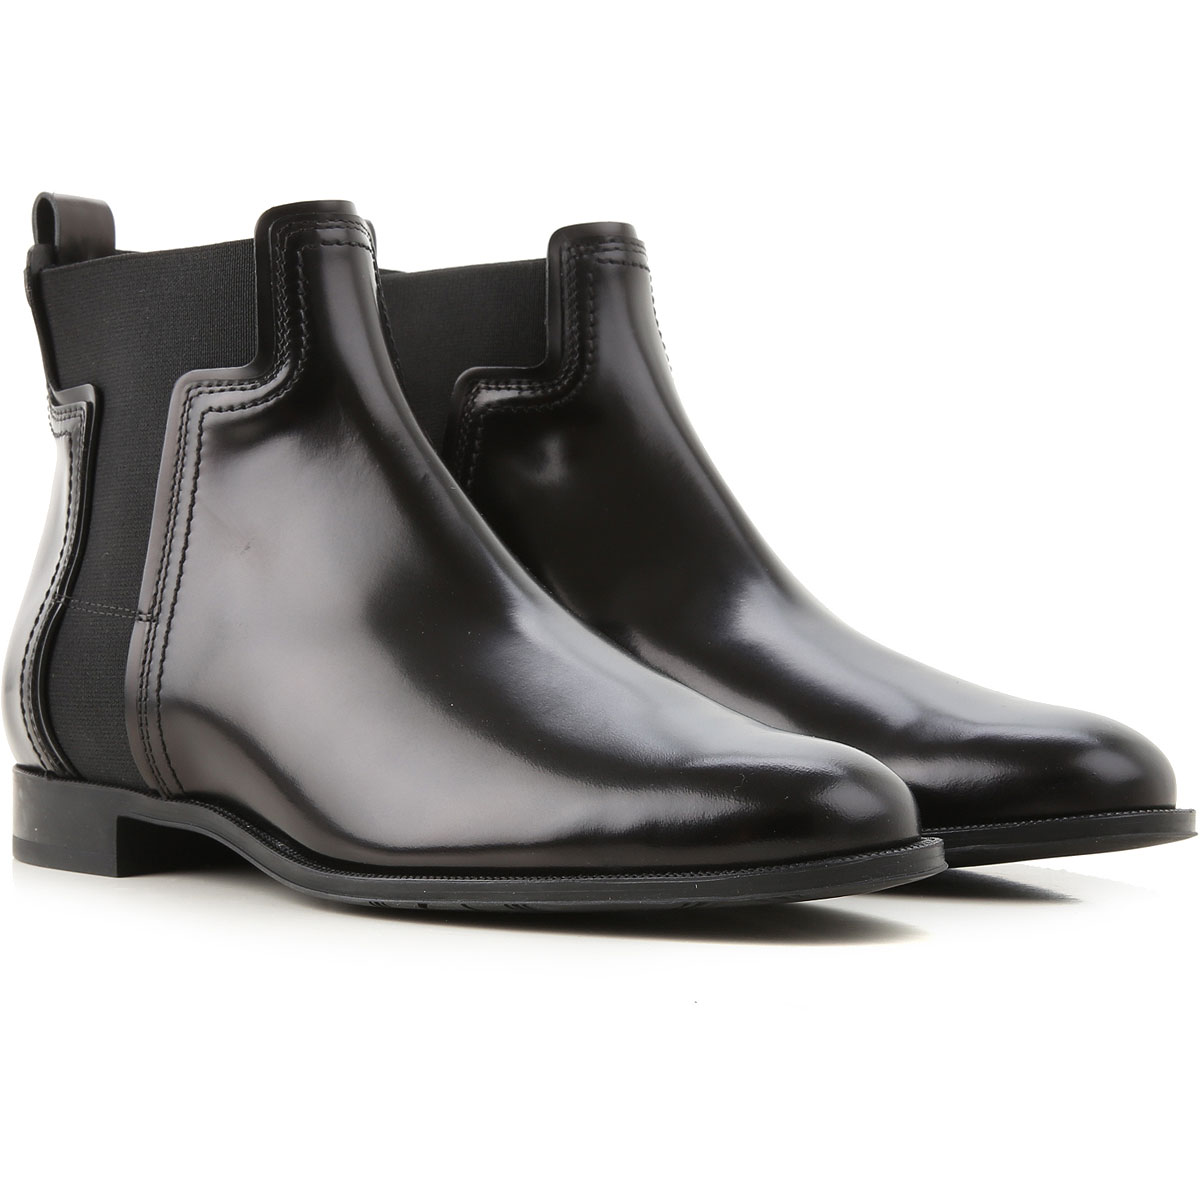 Tods Boots for Women, Booties, Black, Leather, 2019, 10 5 6 6.5 7 8 9